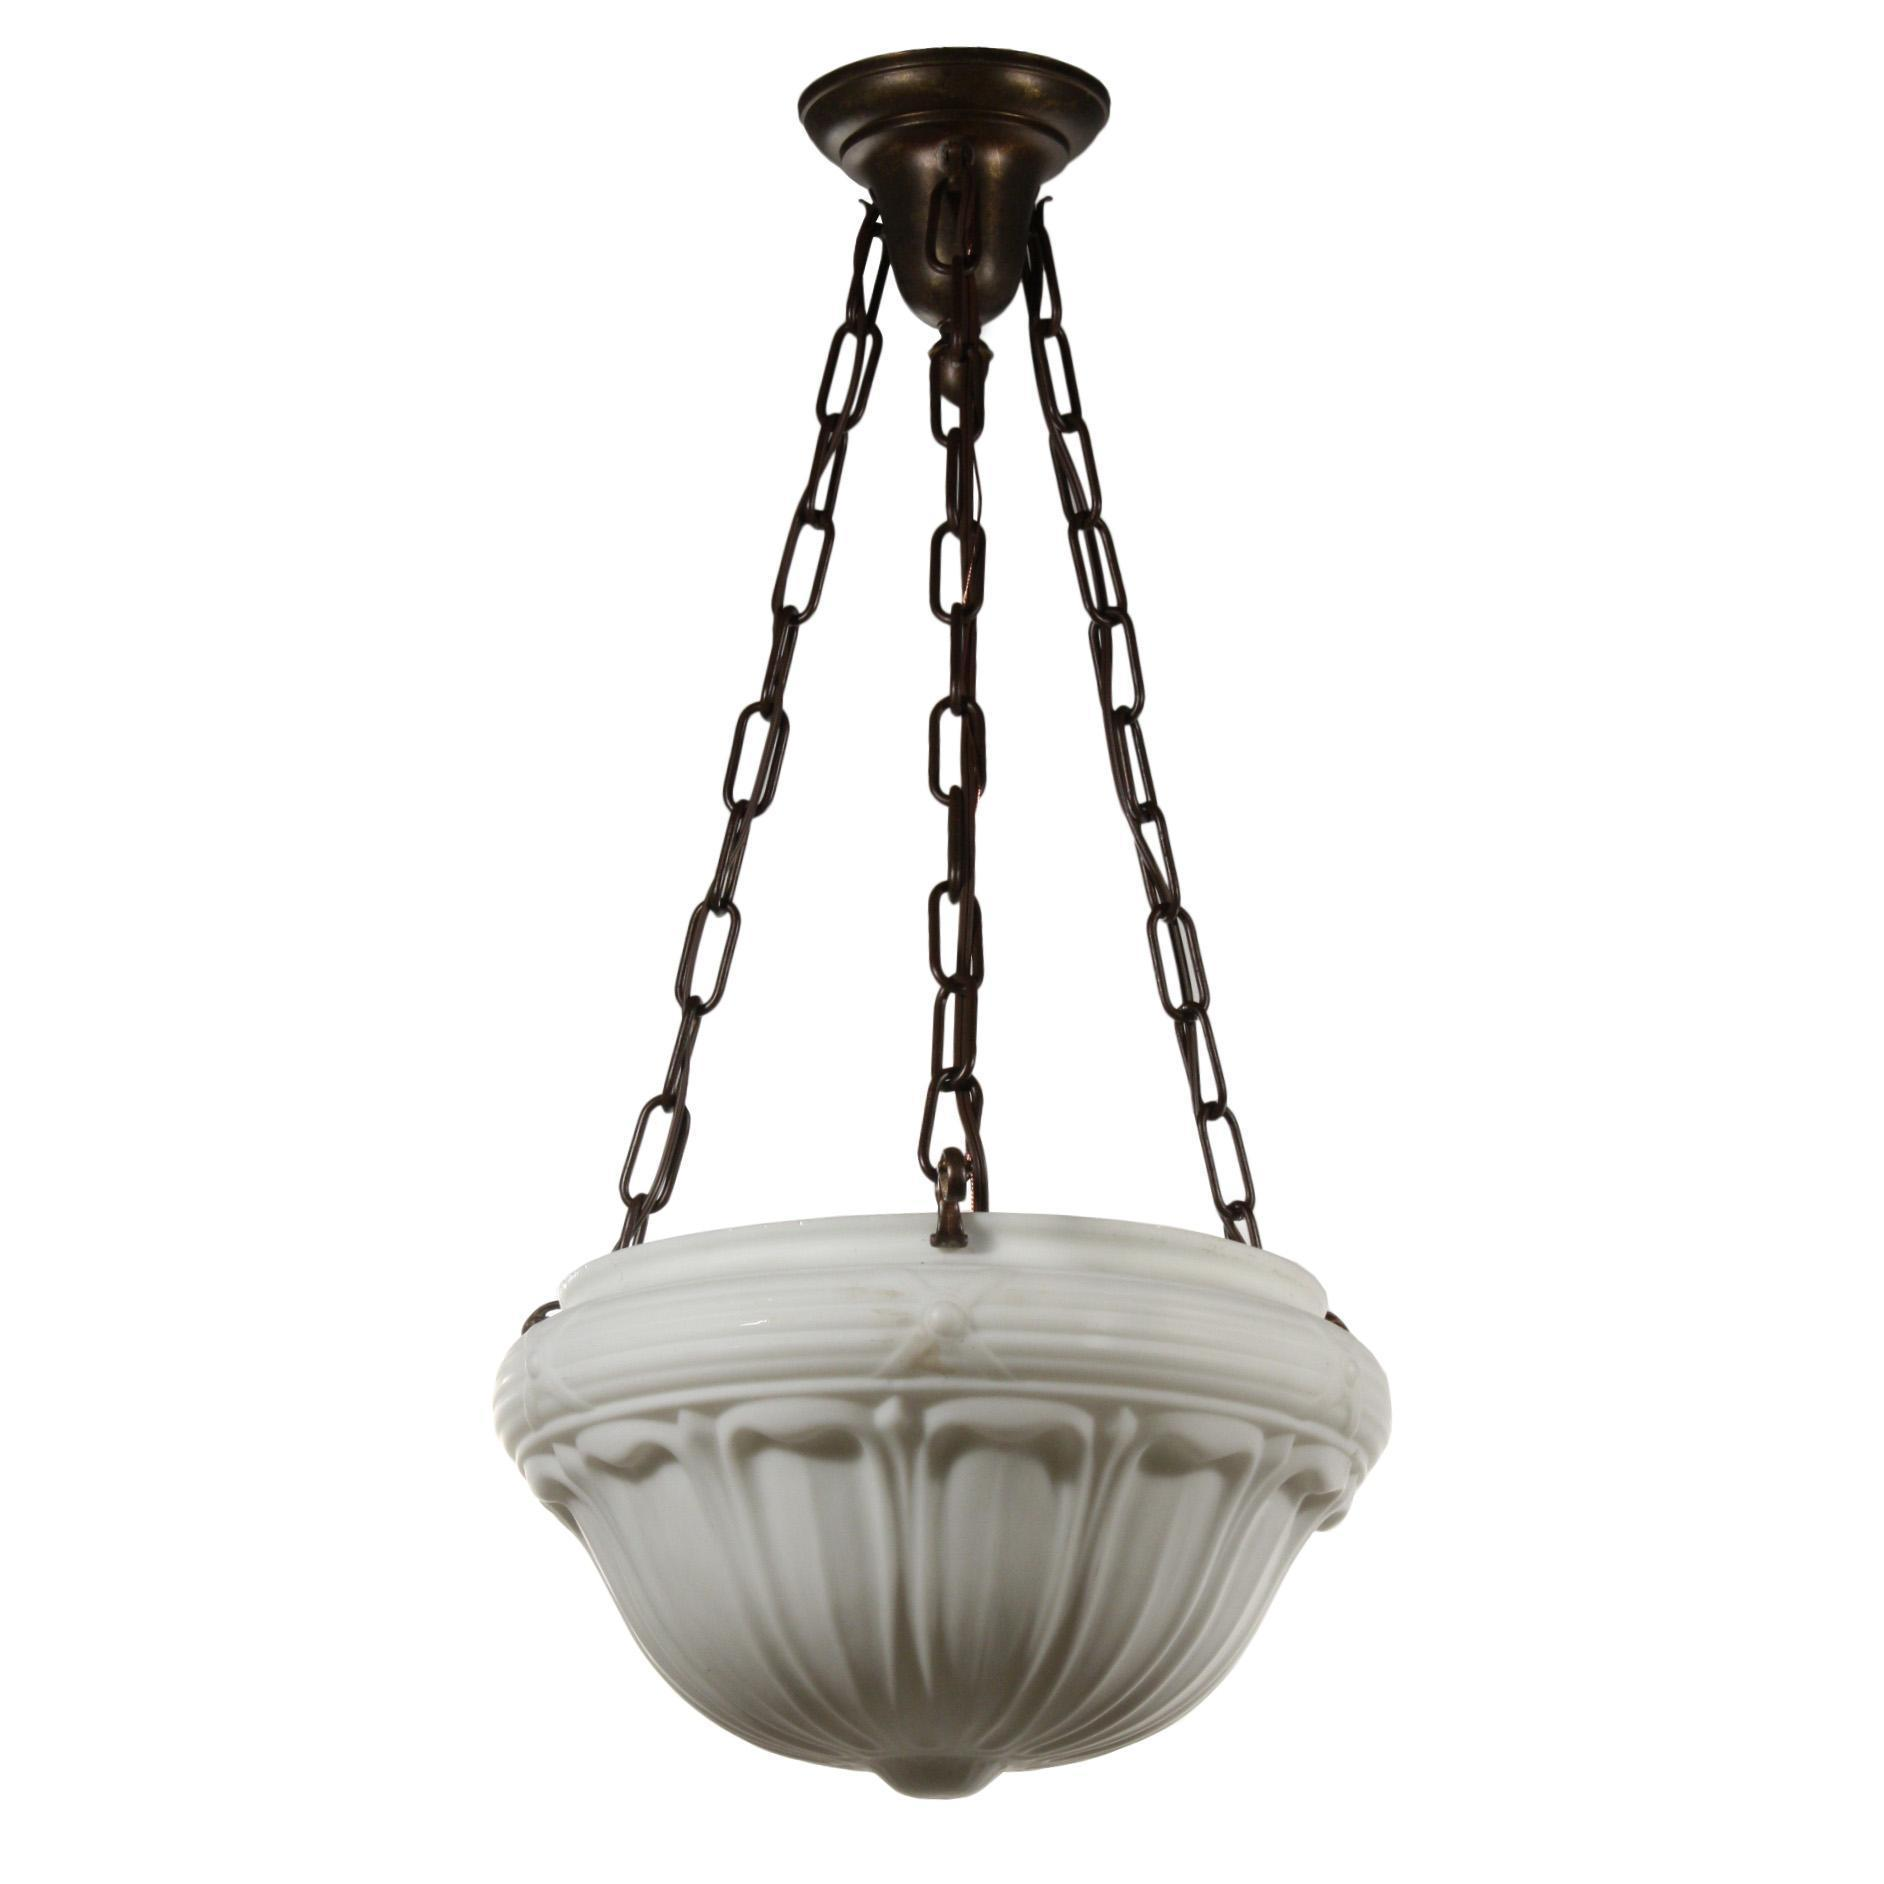 Antique Neoclassical Inverted Dome Chandelier, c.1910